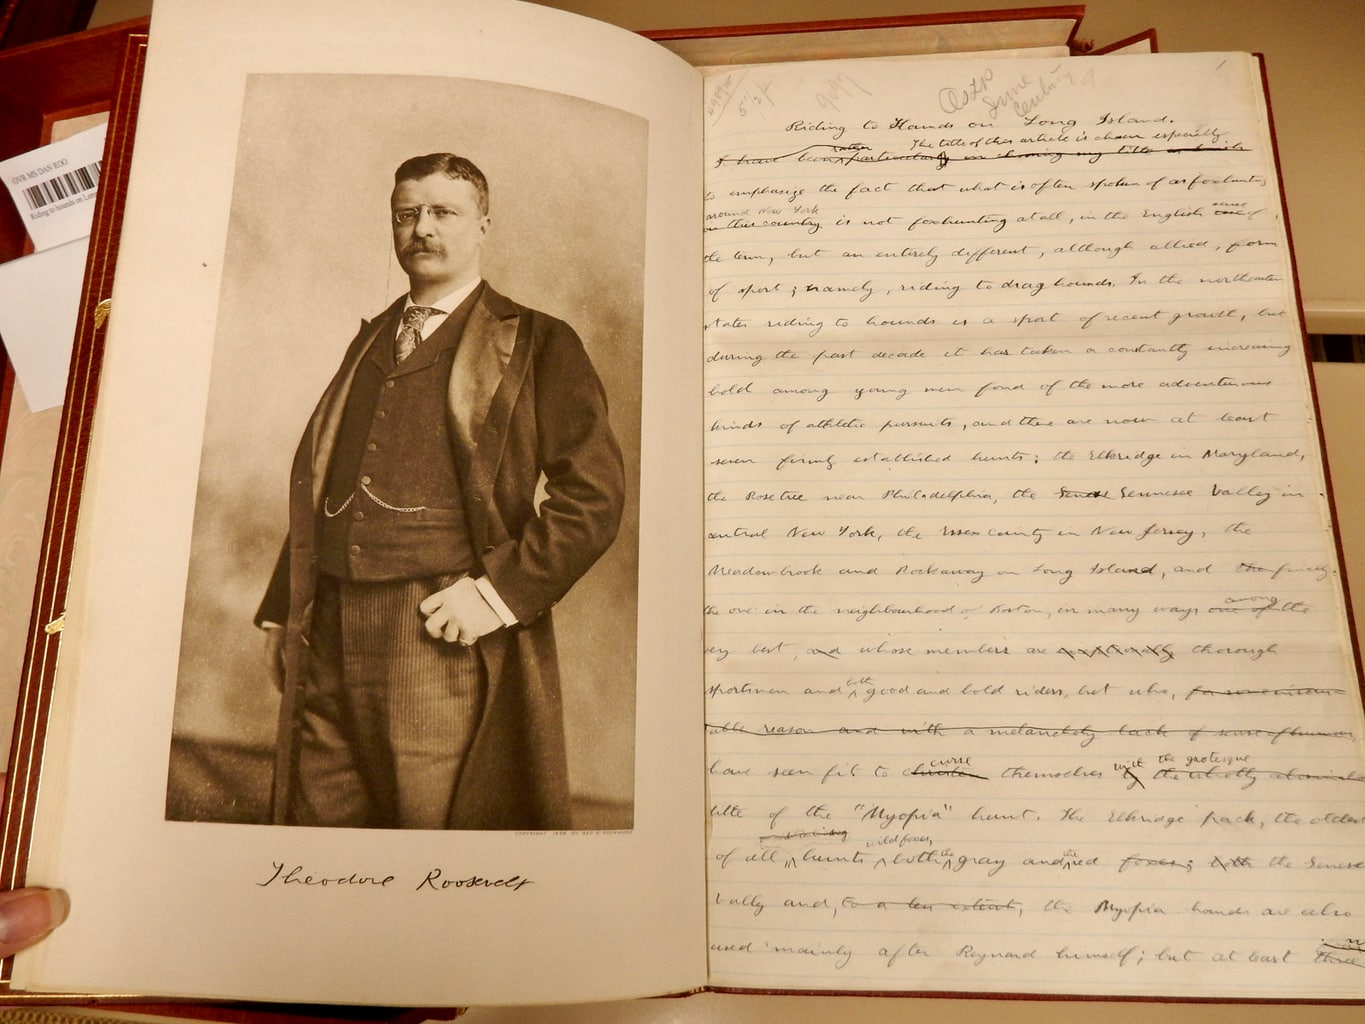 Teddy Roosevelt Essay National Sporting Library and Museum Middleburg VA